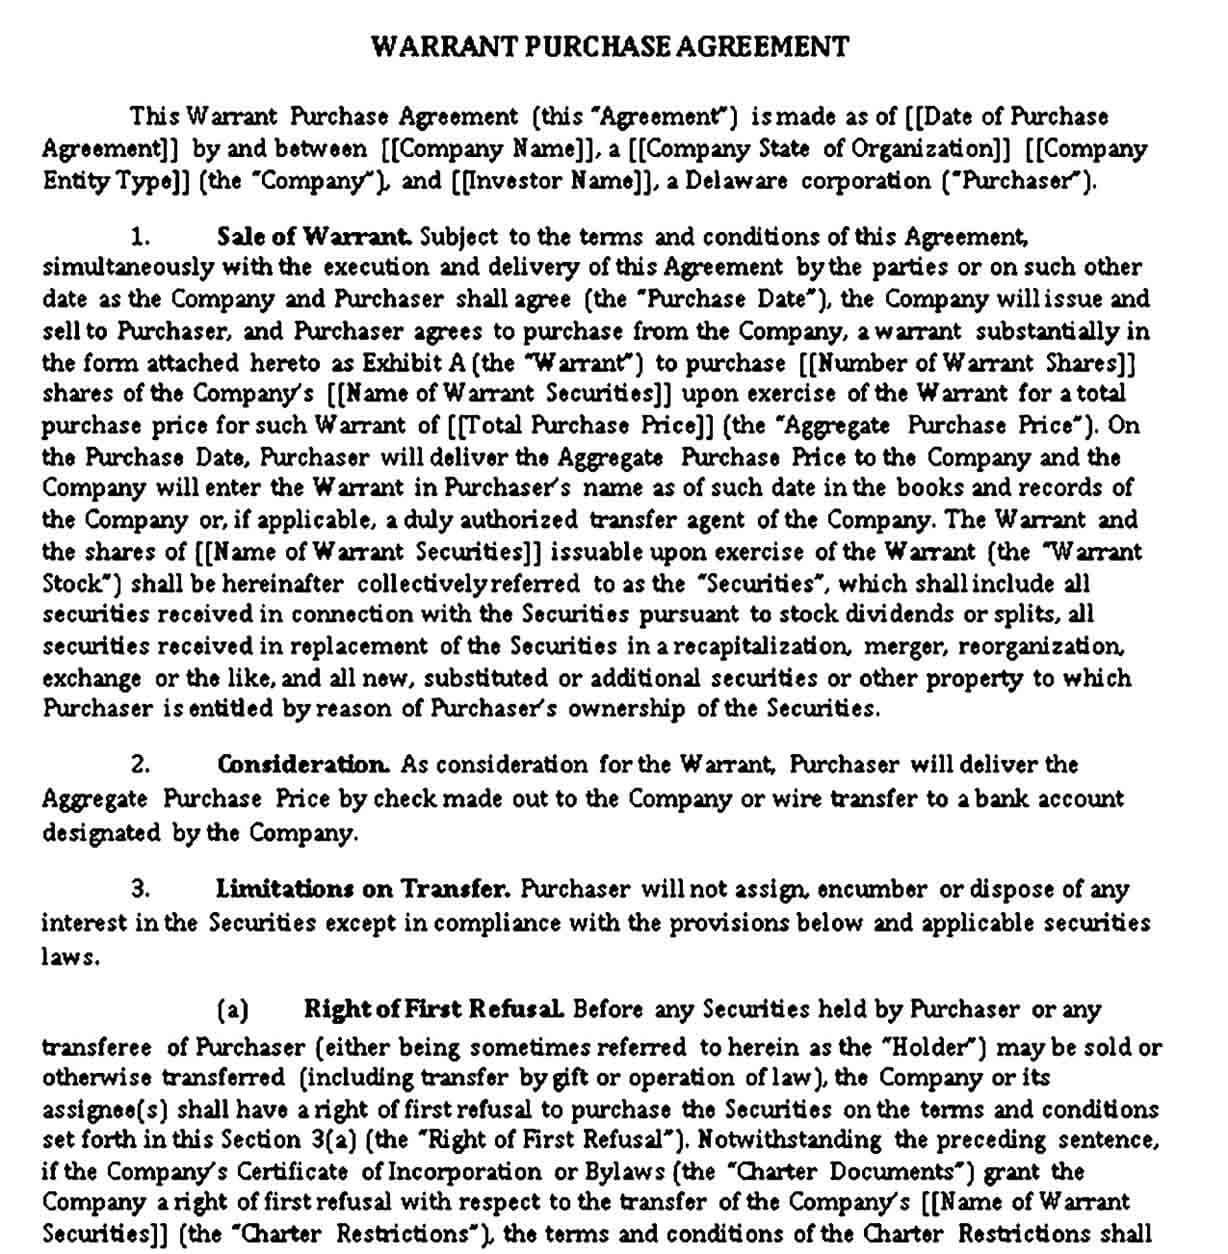 Warrant Purchase Agreement